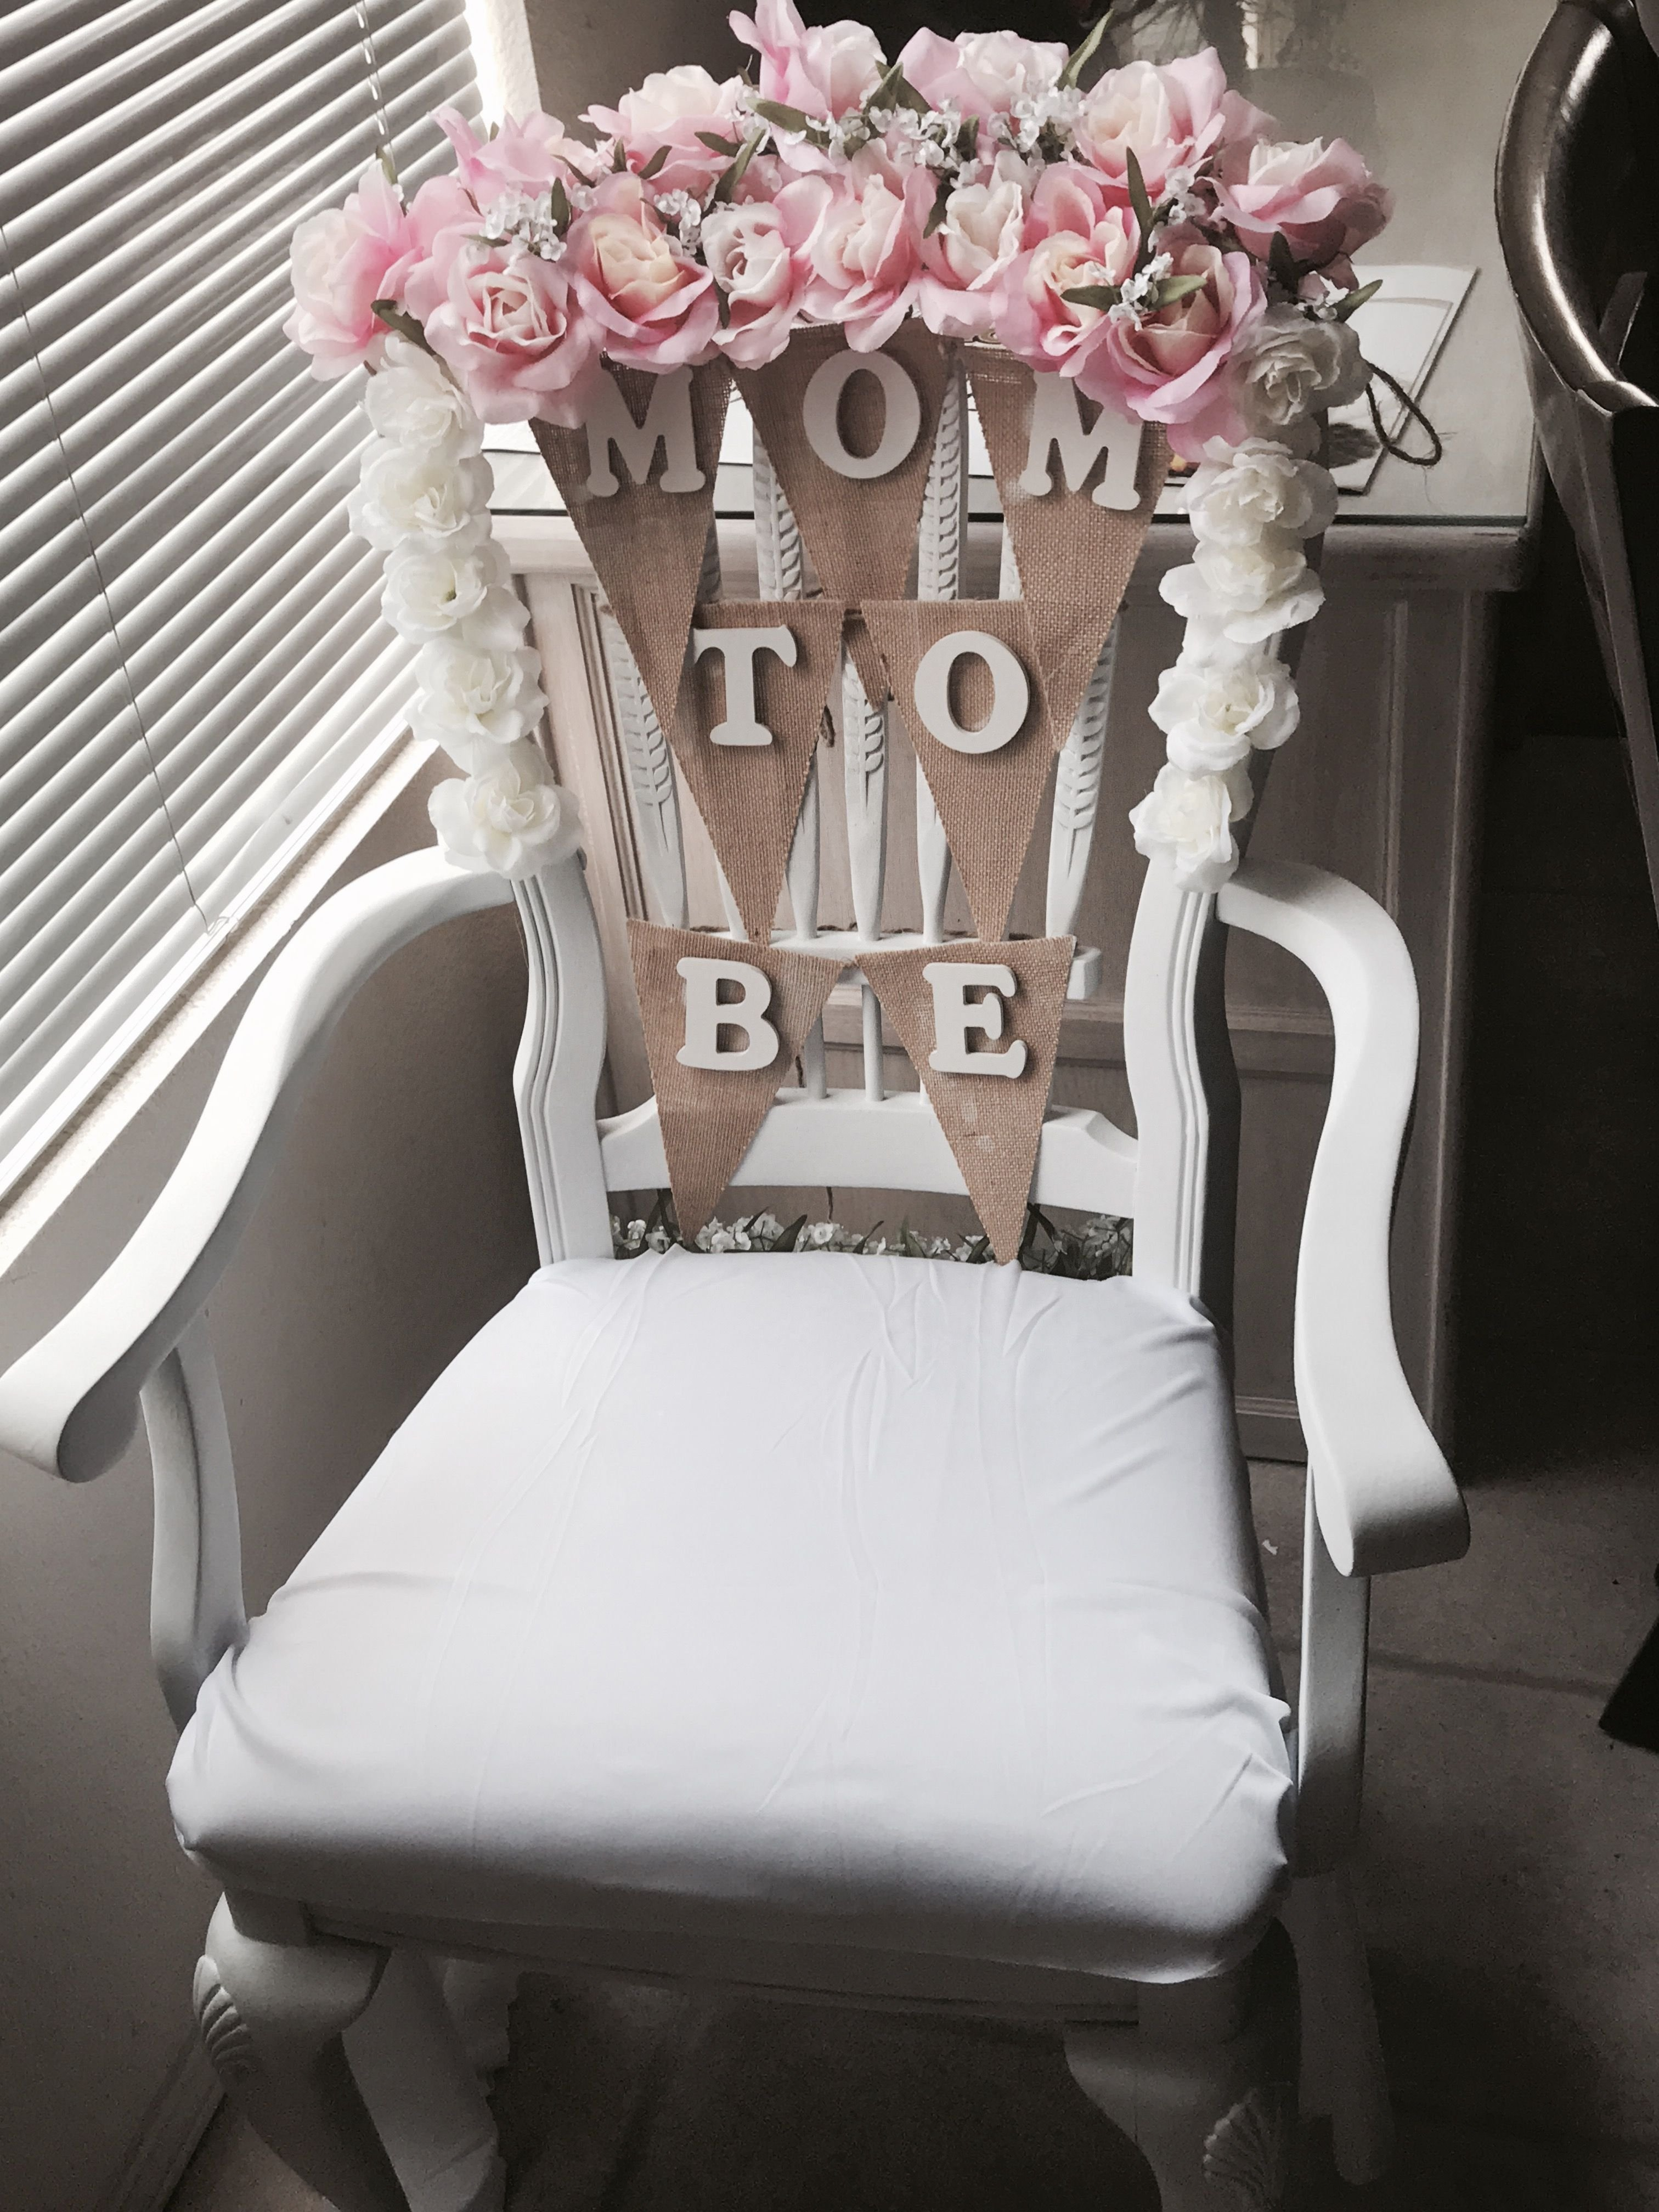 10 Fantastic Baby Shower Chair Decoration Ideas baby shower chair idea flowers from walmart wood letters from 2021